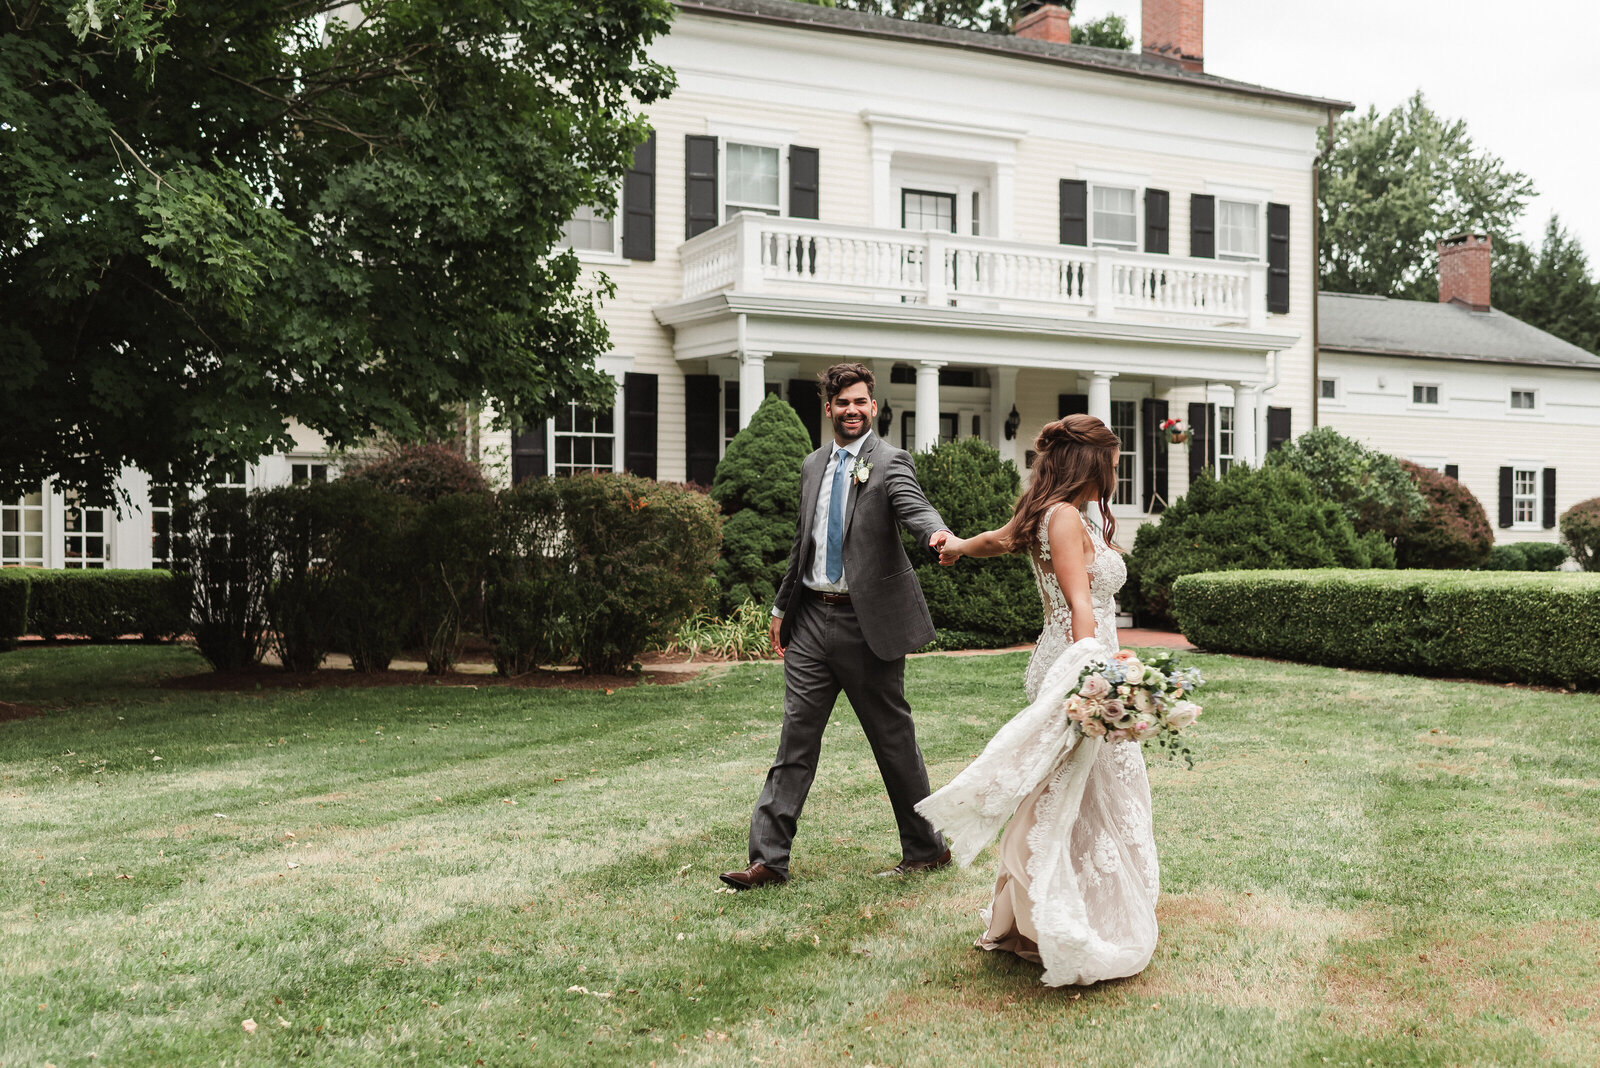 ken-hulle-house-wedding-photography-suess-moments-bridal-party-wedding-photos-new-york (267 of 394)